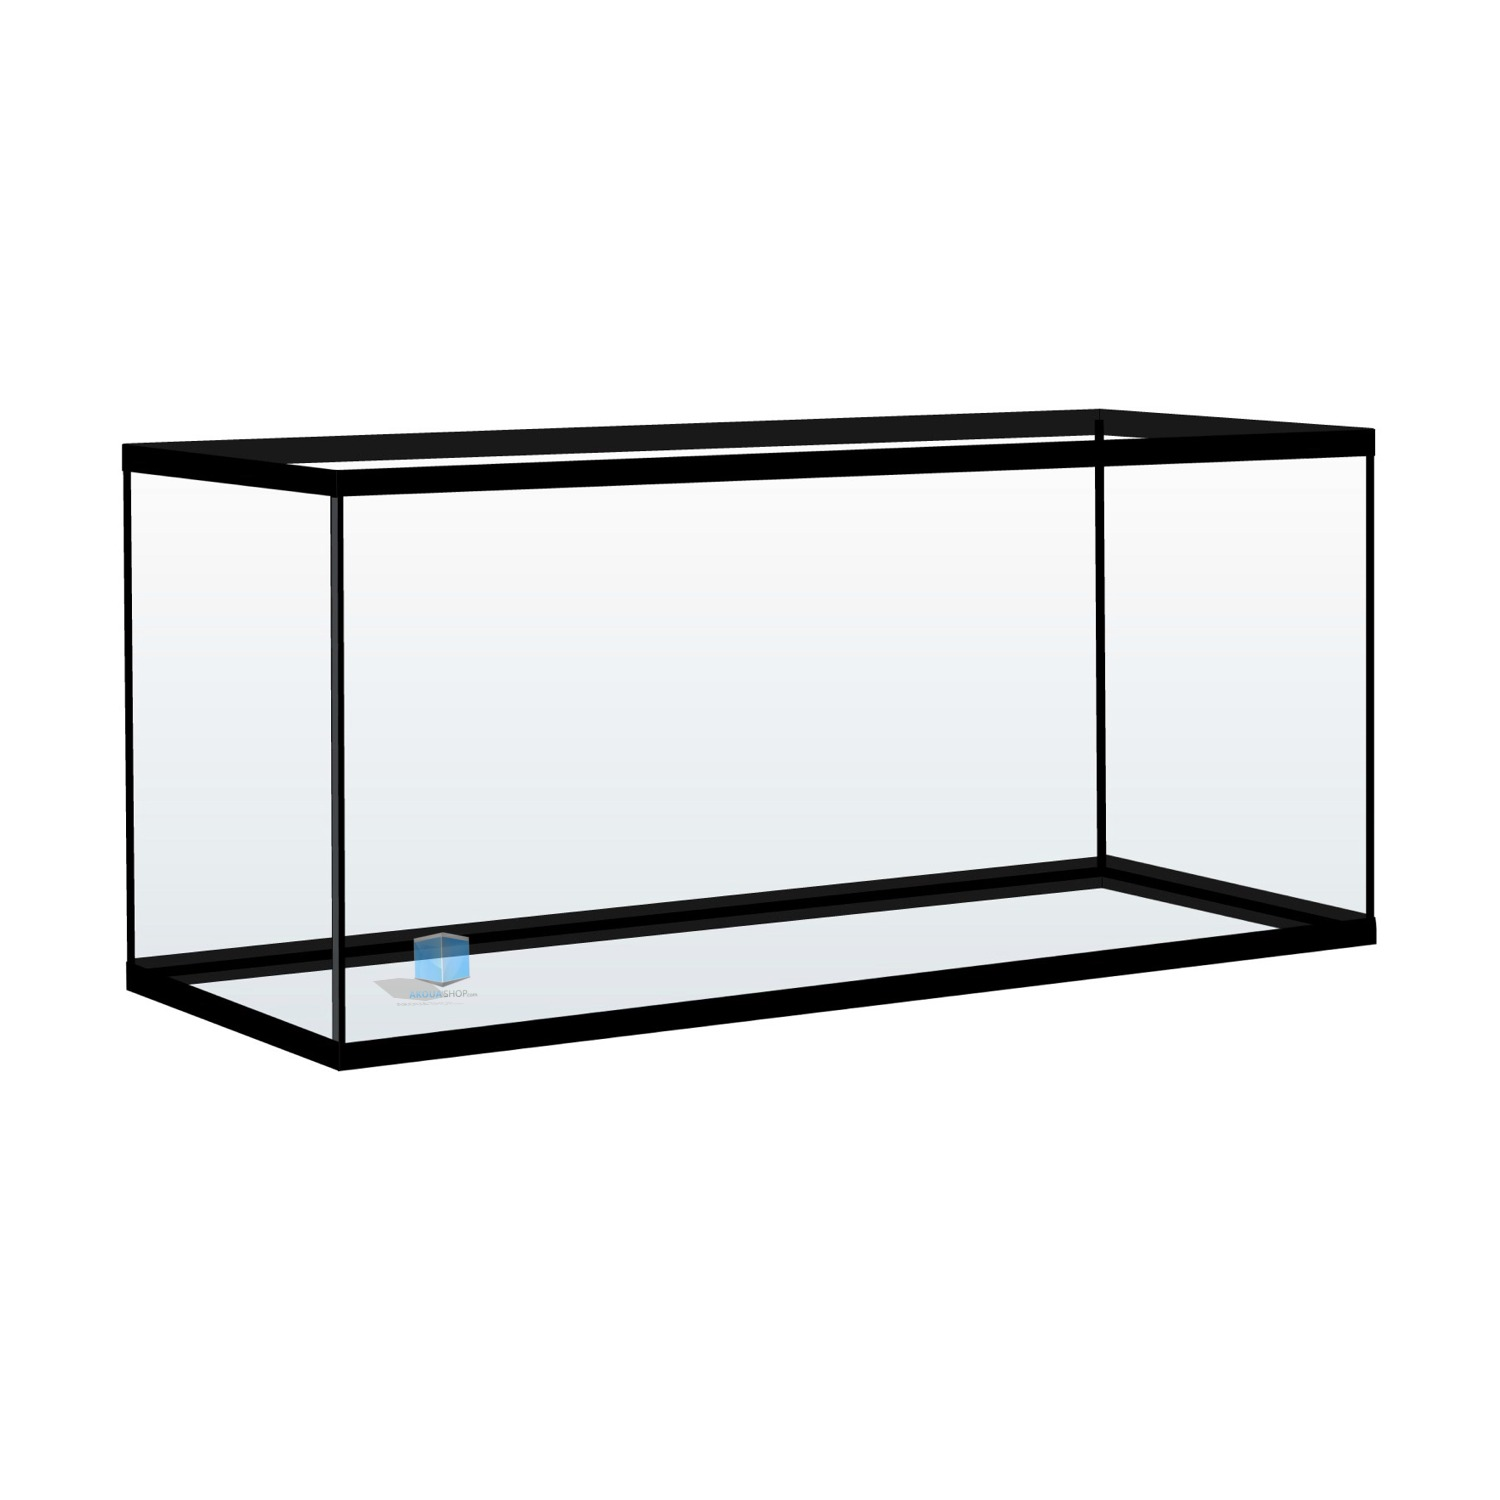 cuve d 39 aquarium nue 96l dim 80 x 30 x 40 cm en vente sur. Black Bedroom Furniture Sets. Home Design Ideas